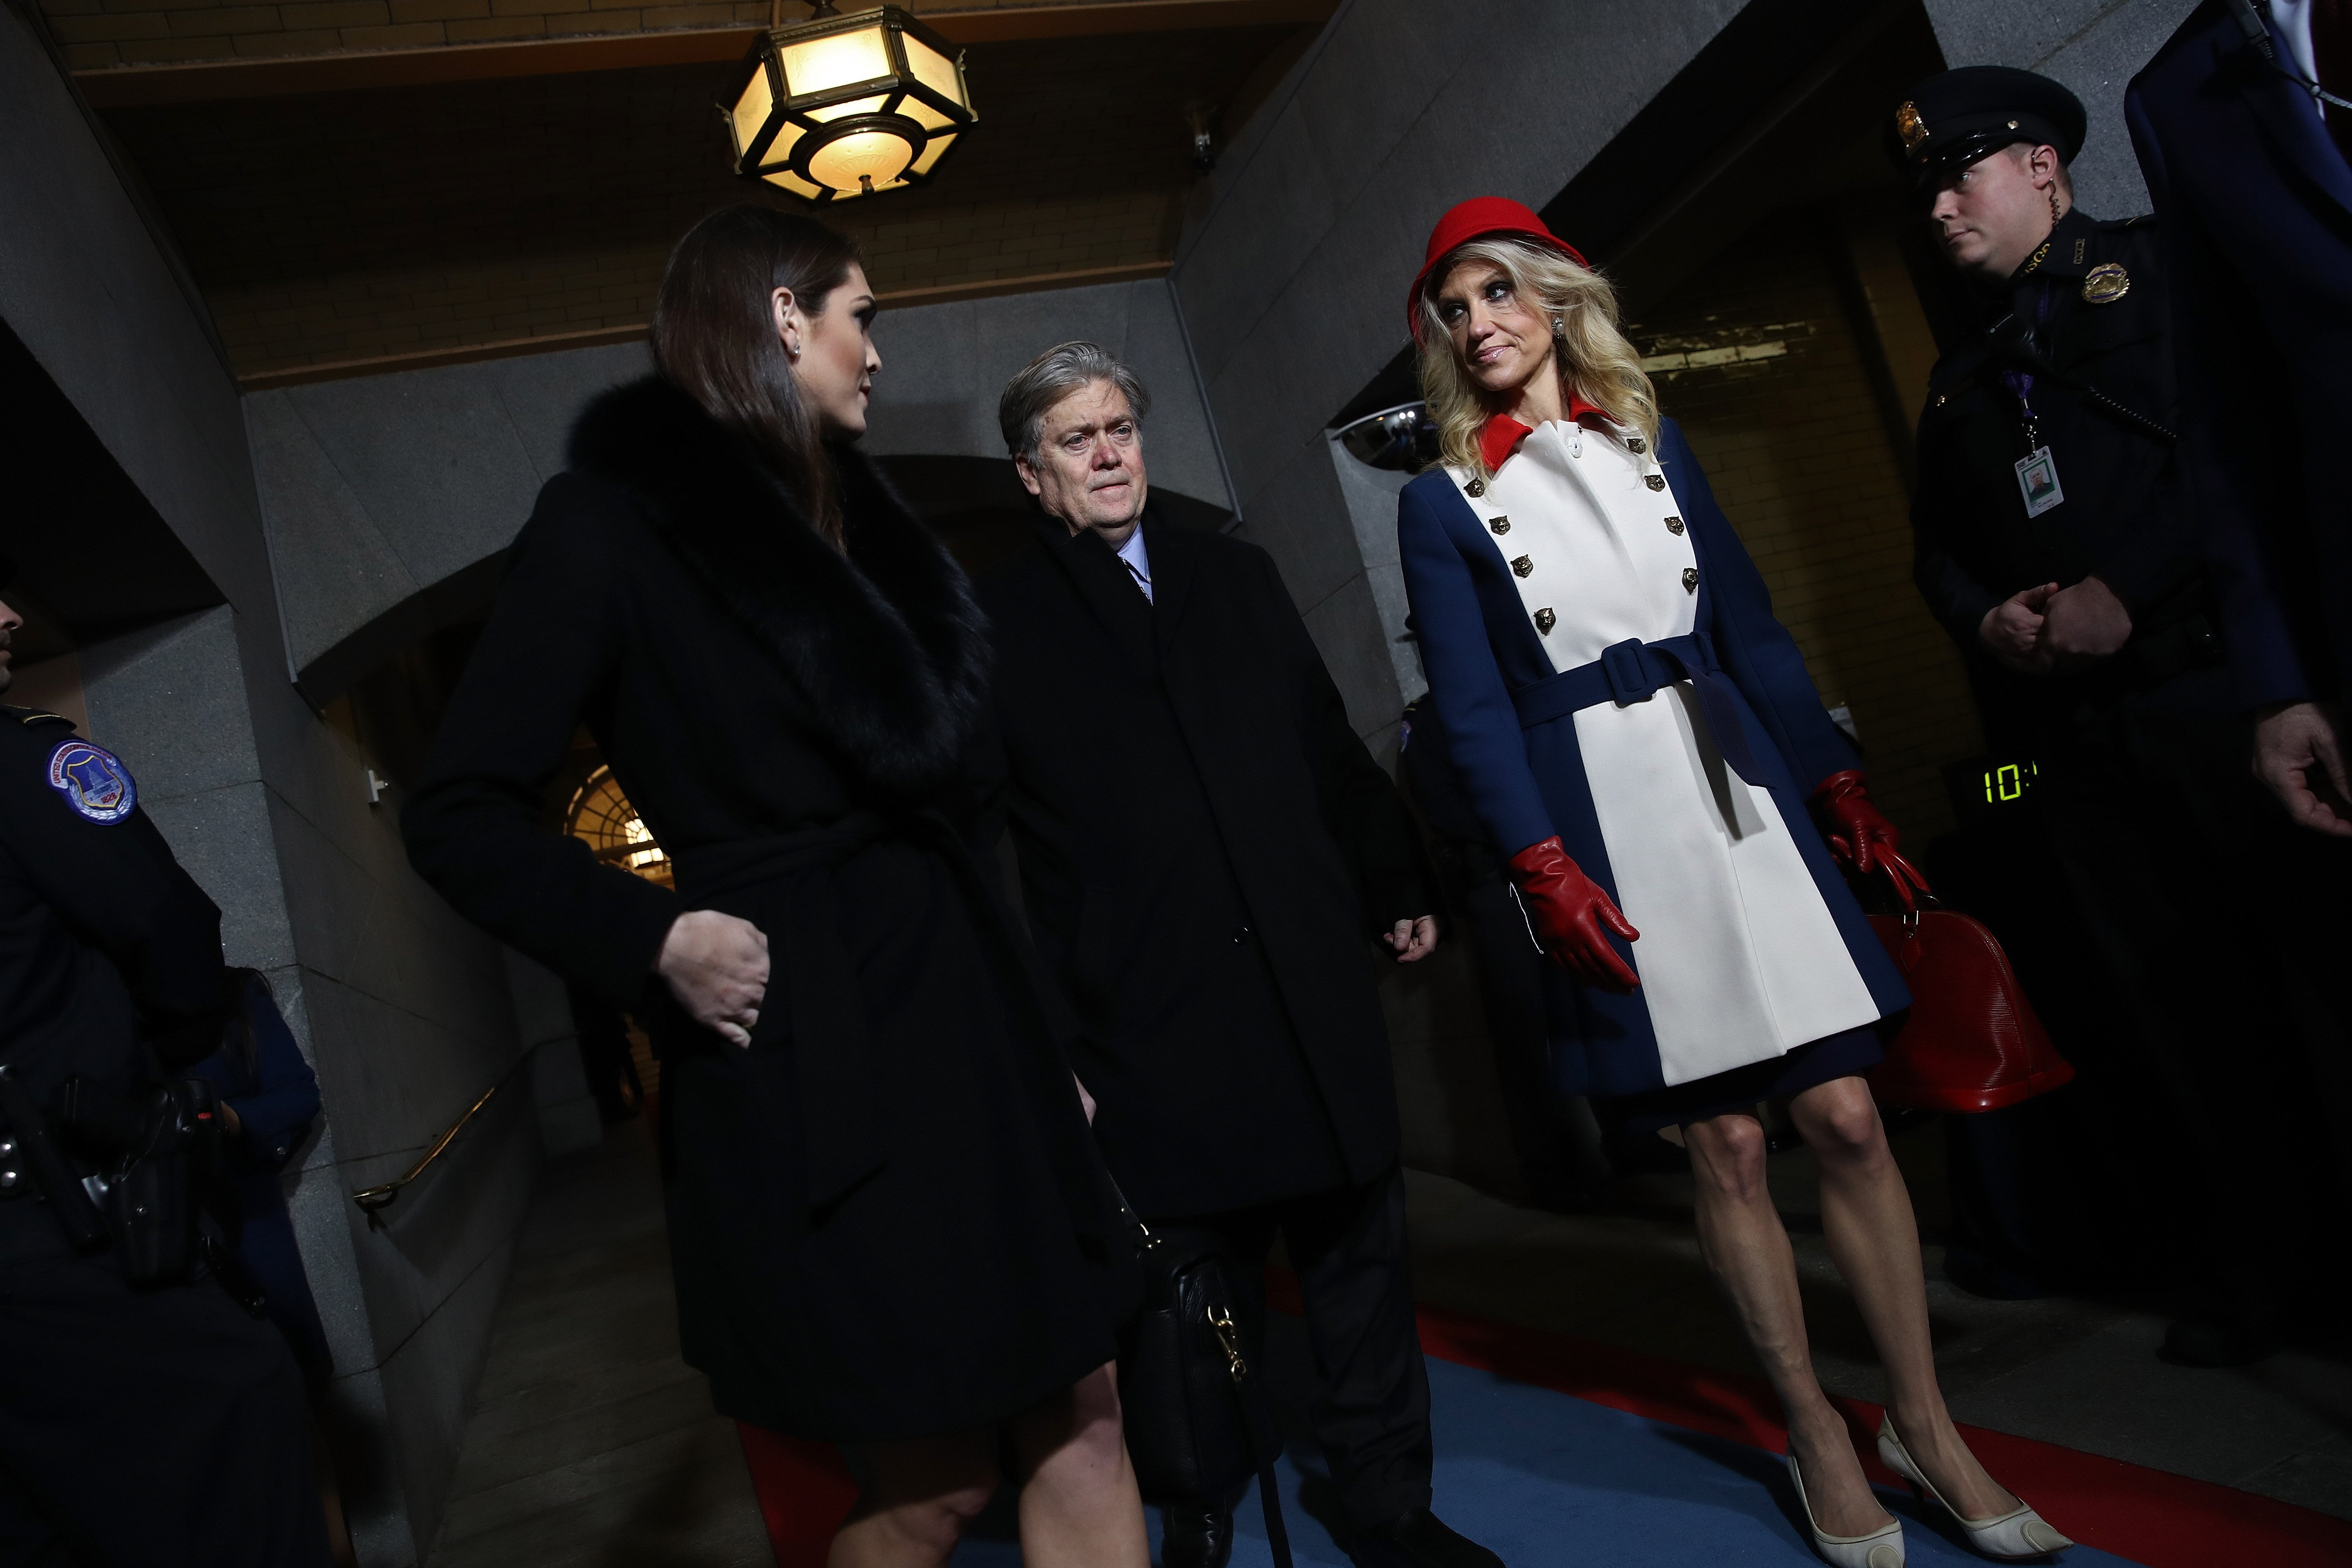 Donald Trump's White House Director of Strategic Communications Hope Hicks, Senior Counselor Steve Bannon and Counselor to the President Kellyanne Conway arrive for the presidential inauguration on the West Front of the U.S. Capitol on January 20, 2017 in